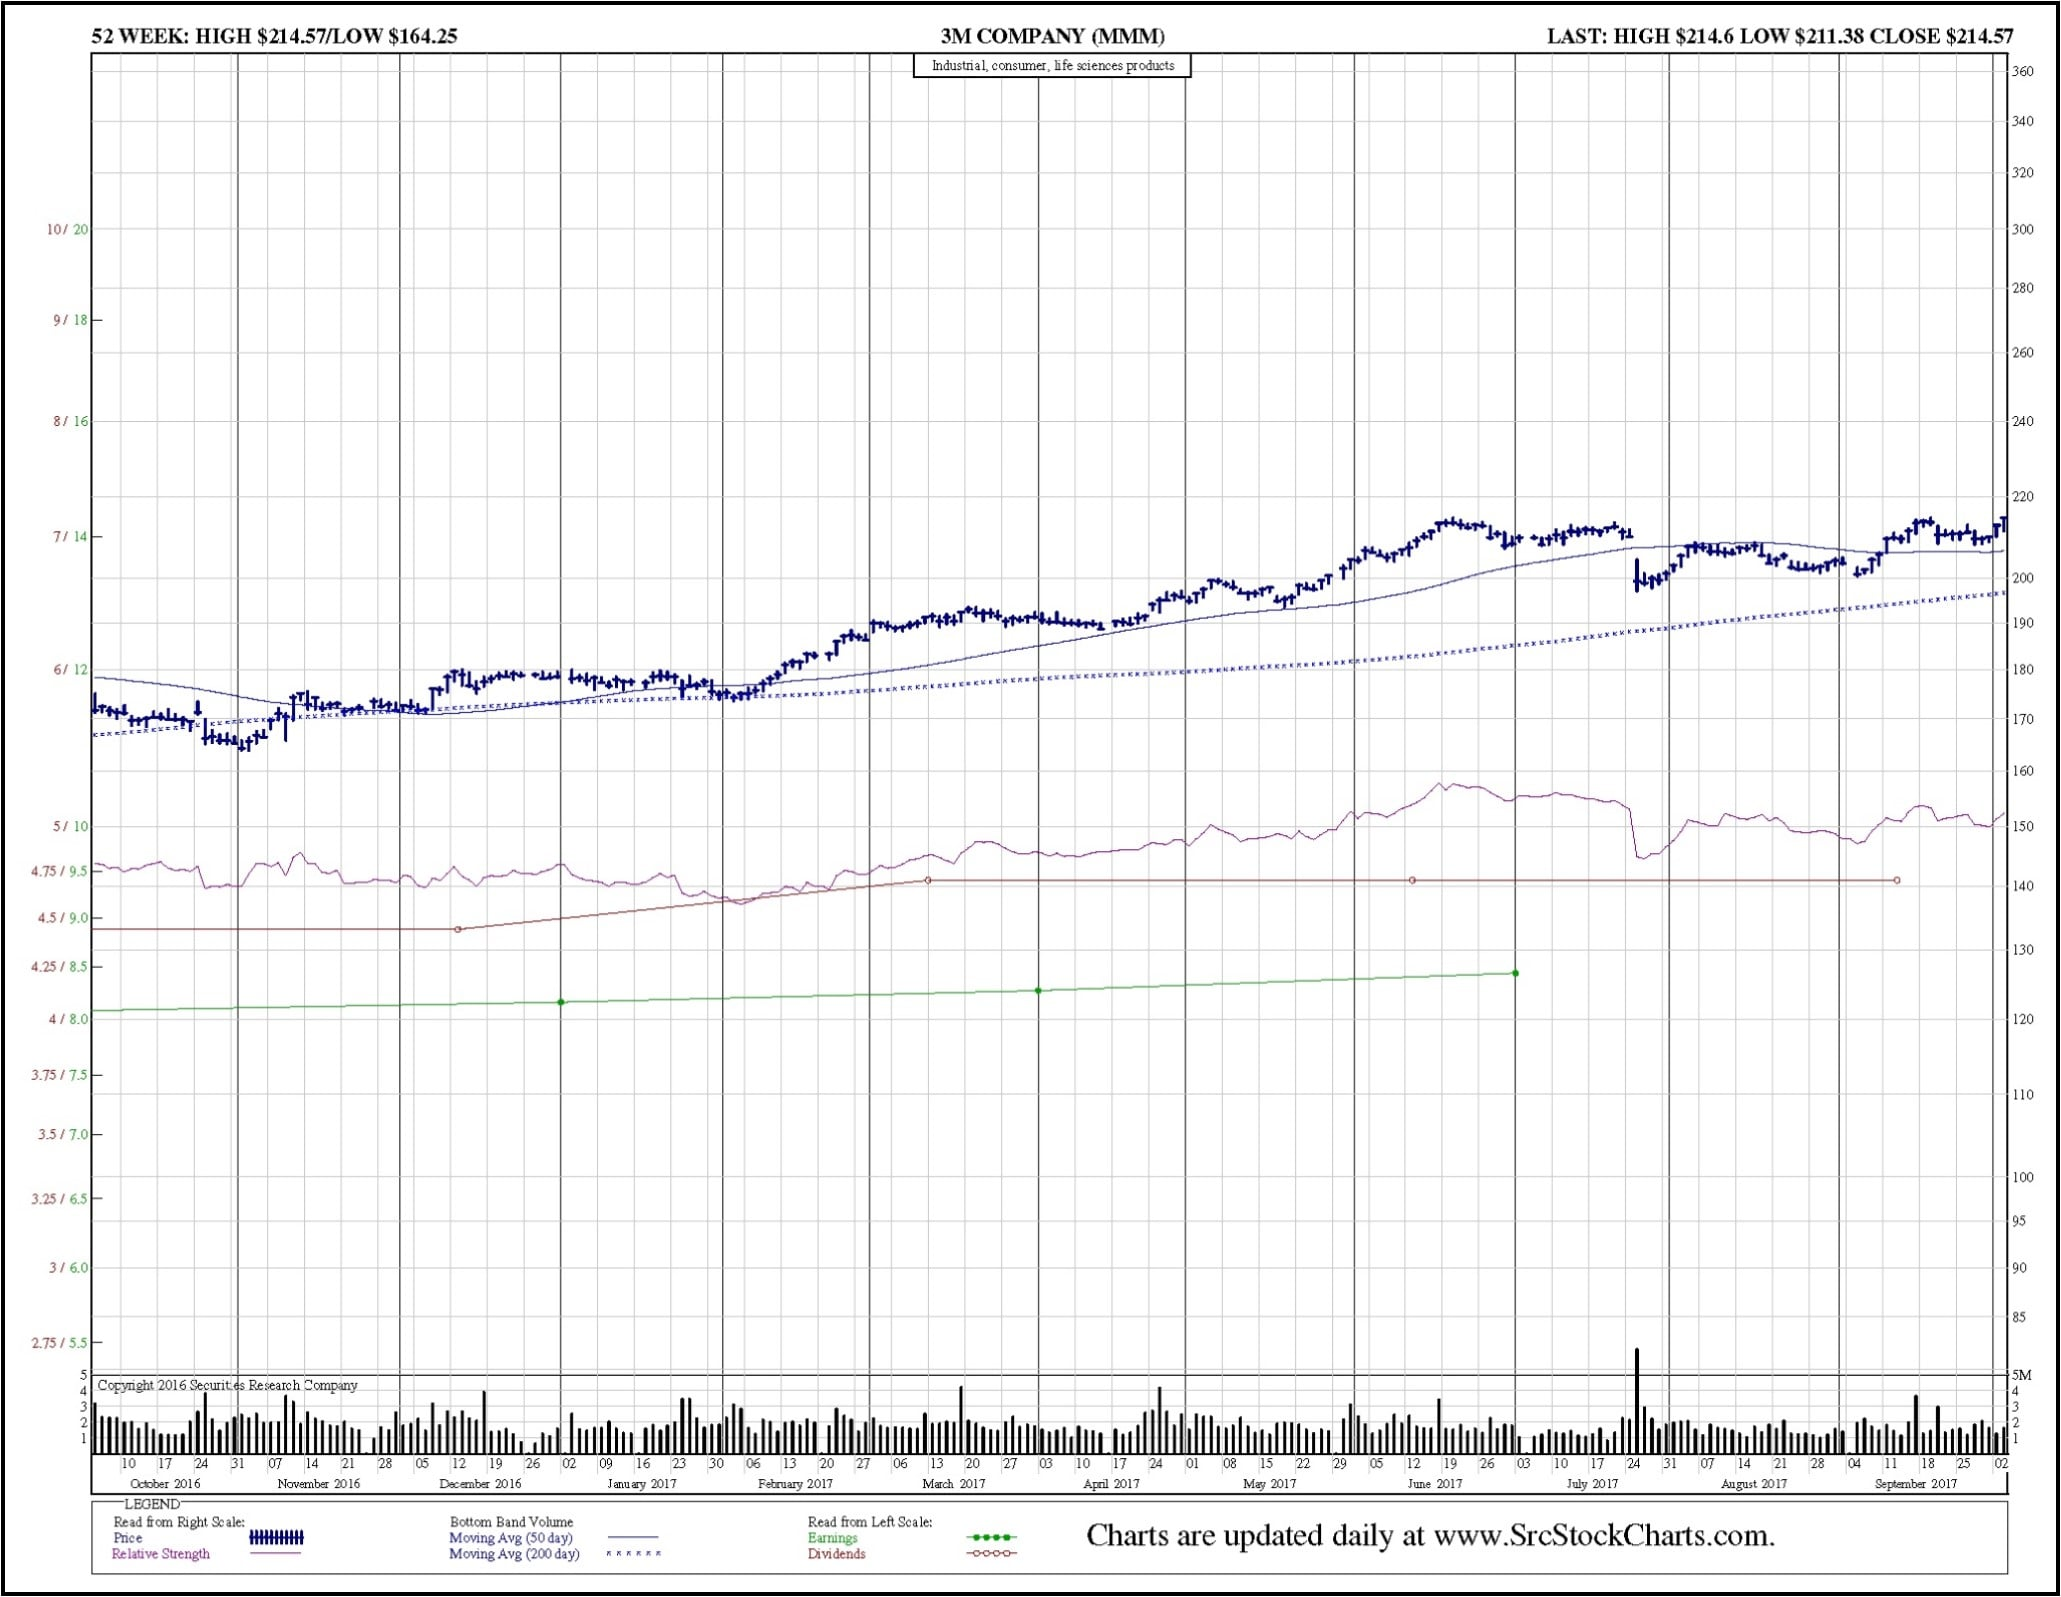 3M (MMM) Daily Chart. Price, earnings per share, dividends, volume, stock splits corporate actions.